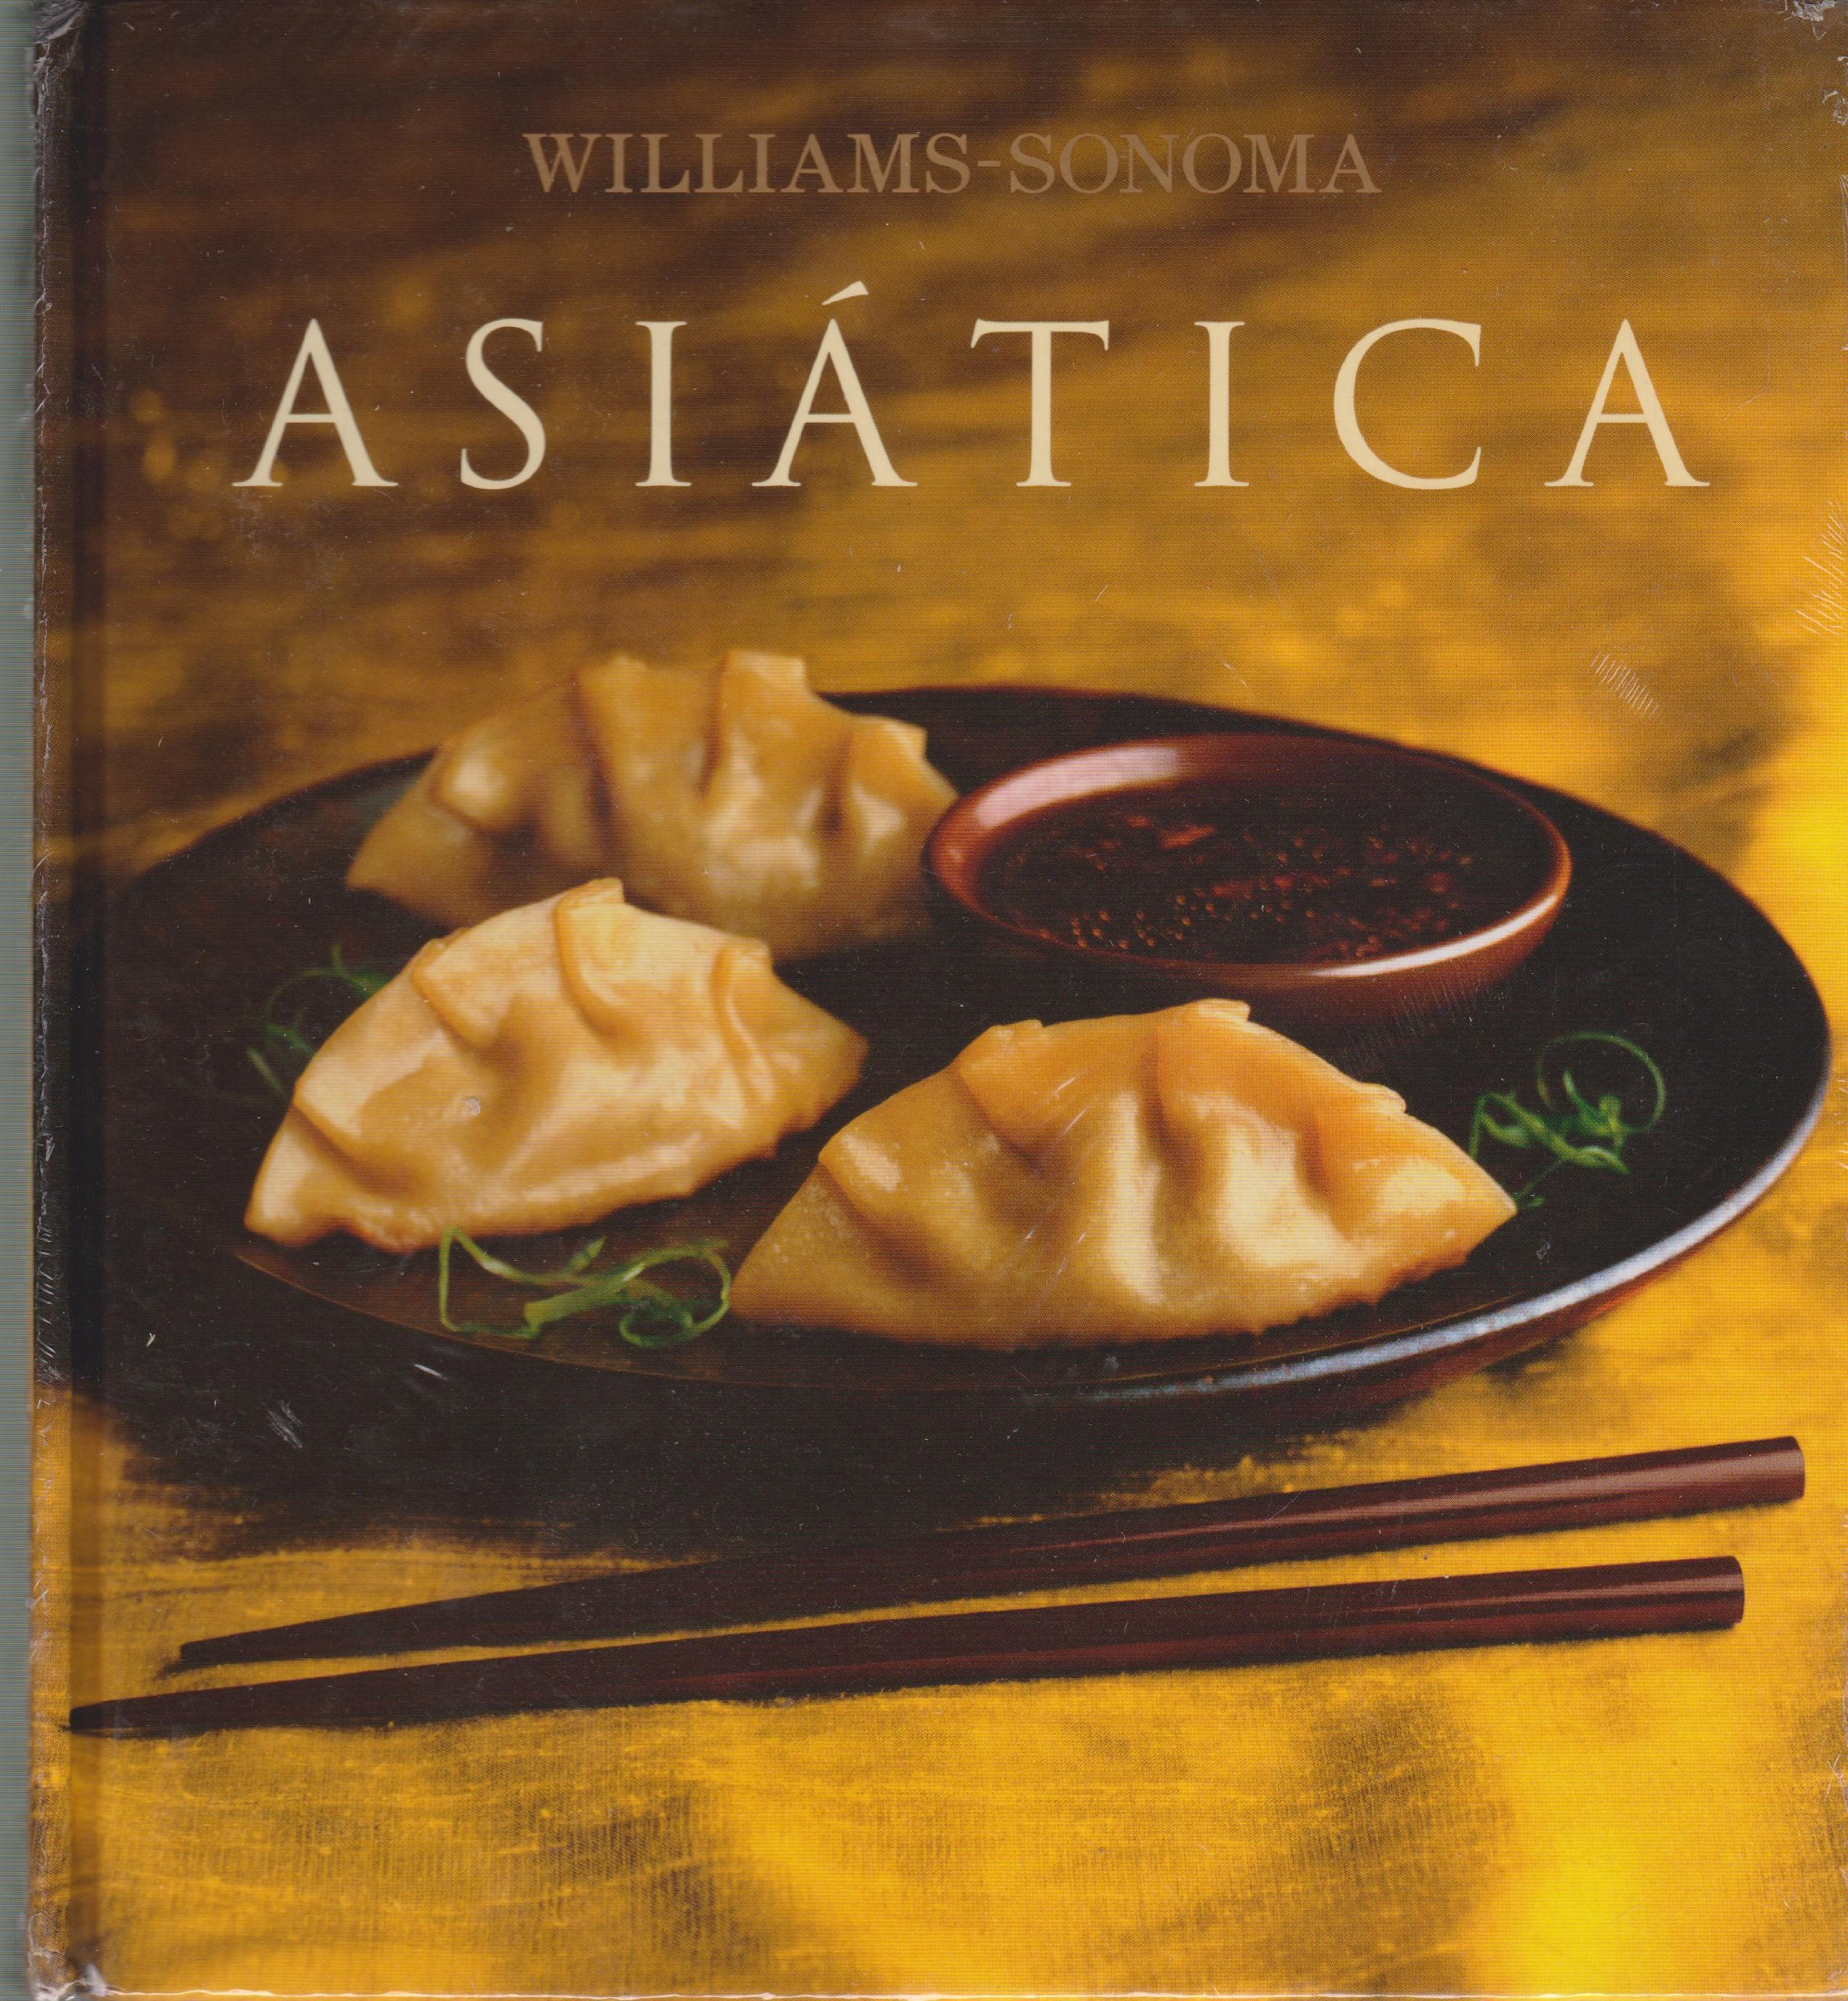 Asiatica: Asian, Spanish-Language Edition (Coleccion Williams-Sonoma) (Spanish Edition) by Brand: Degustis